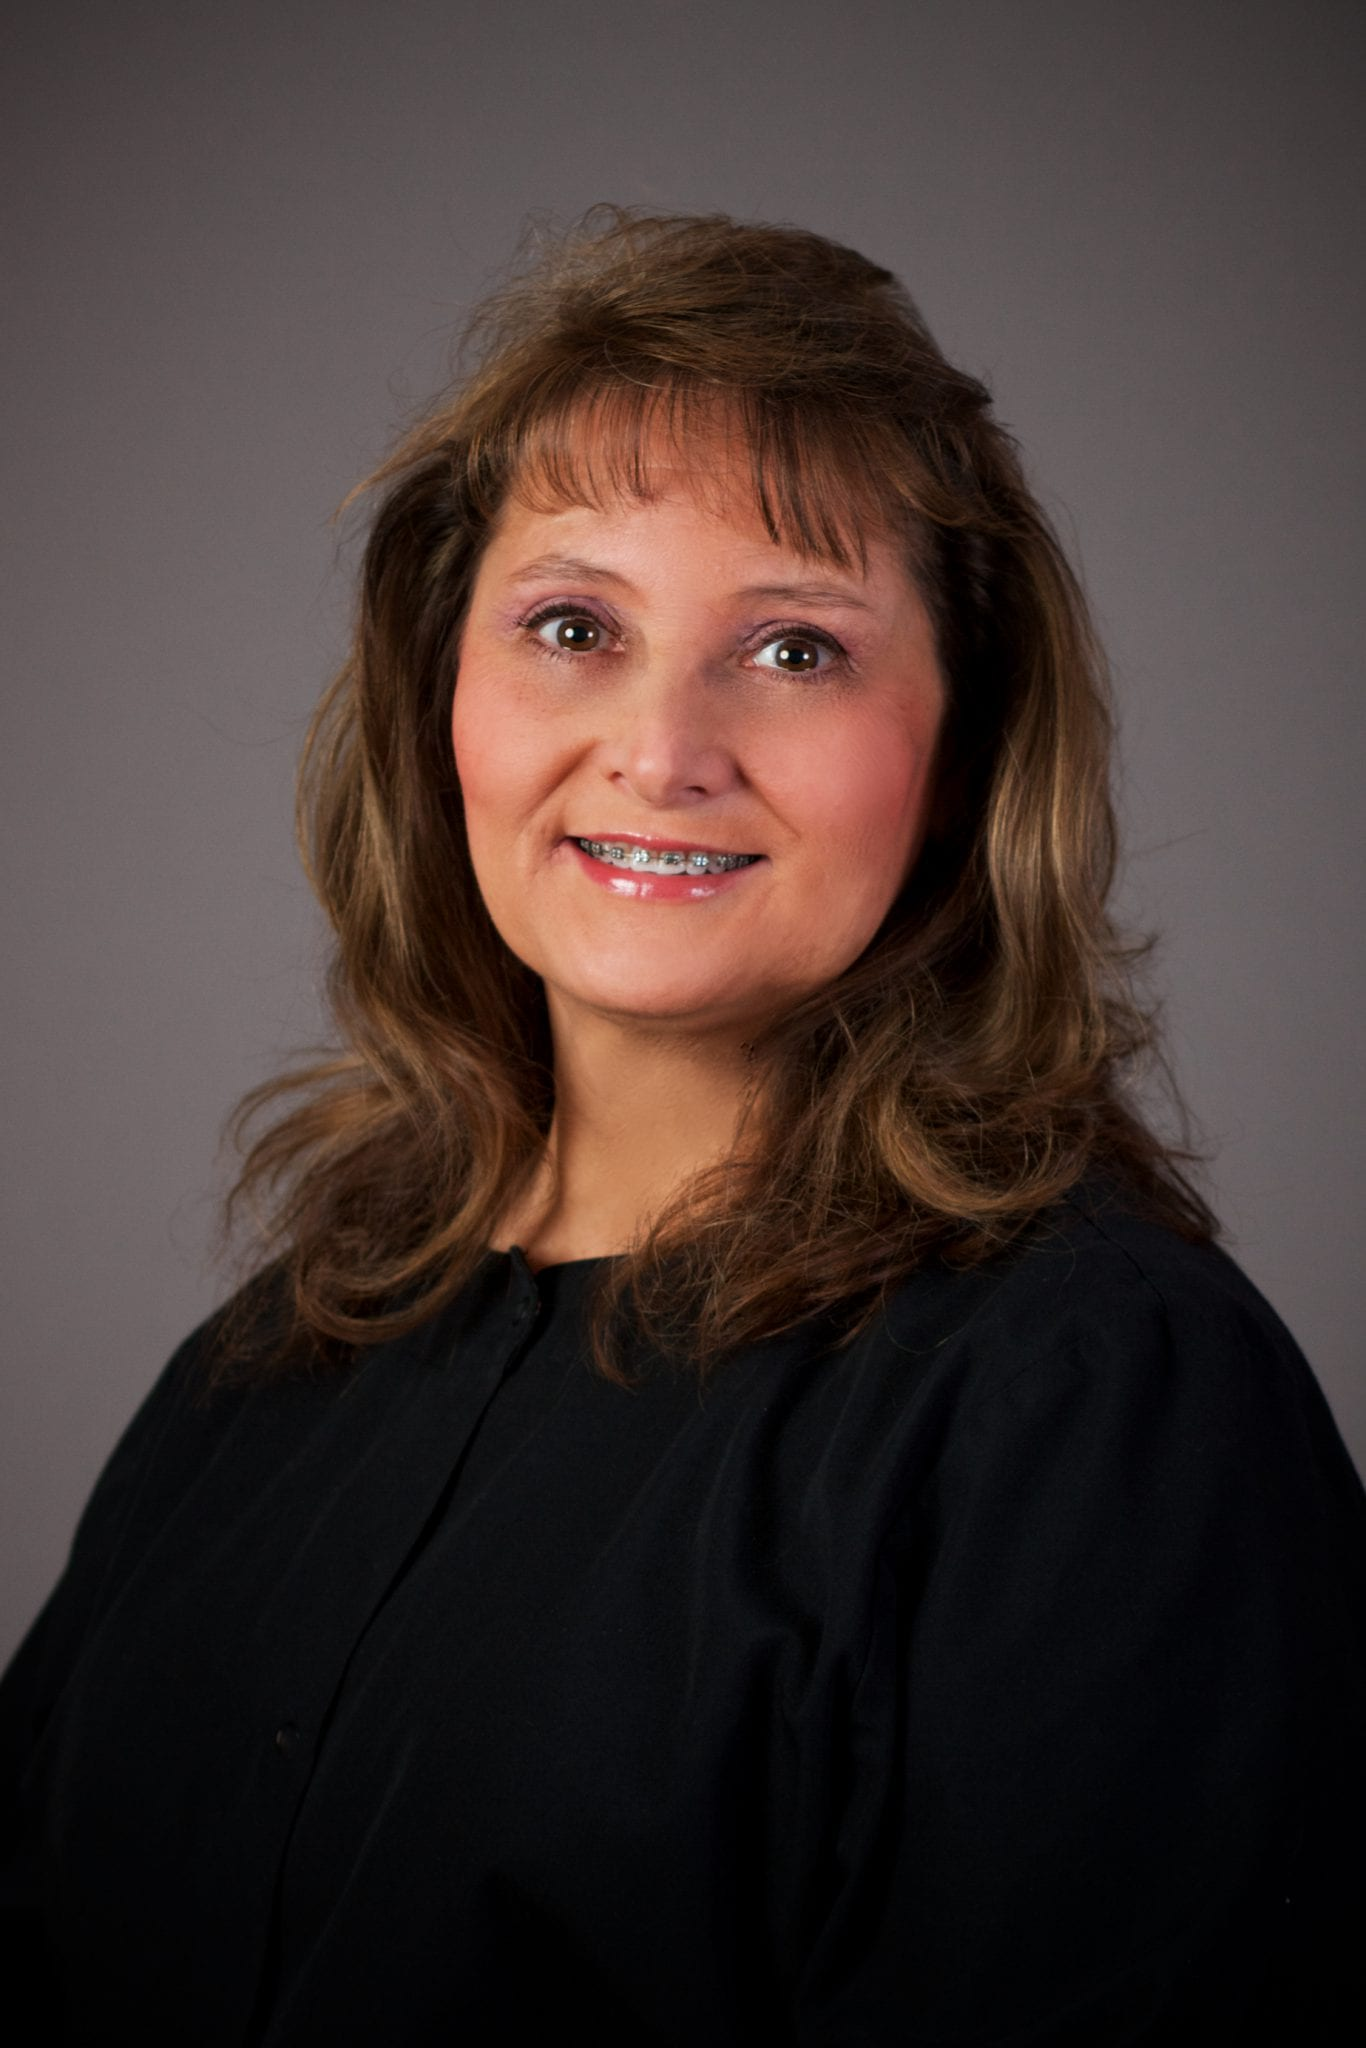 Patty who is a Hygienist at Birdwell and Guffey Family Dentistry in South Knoxville